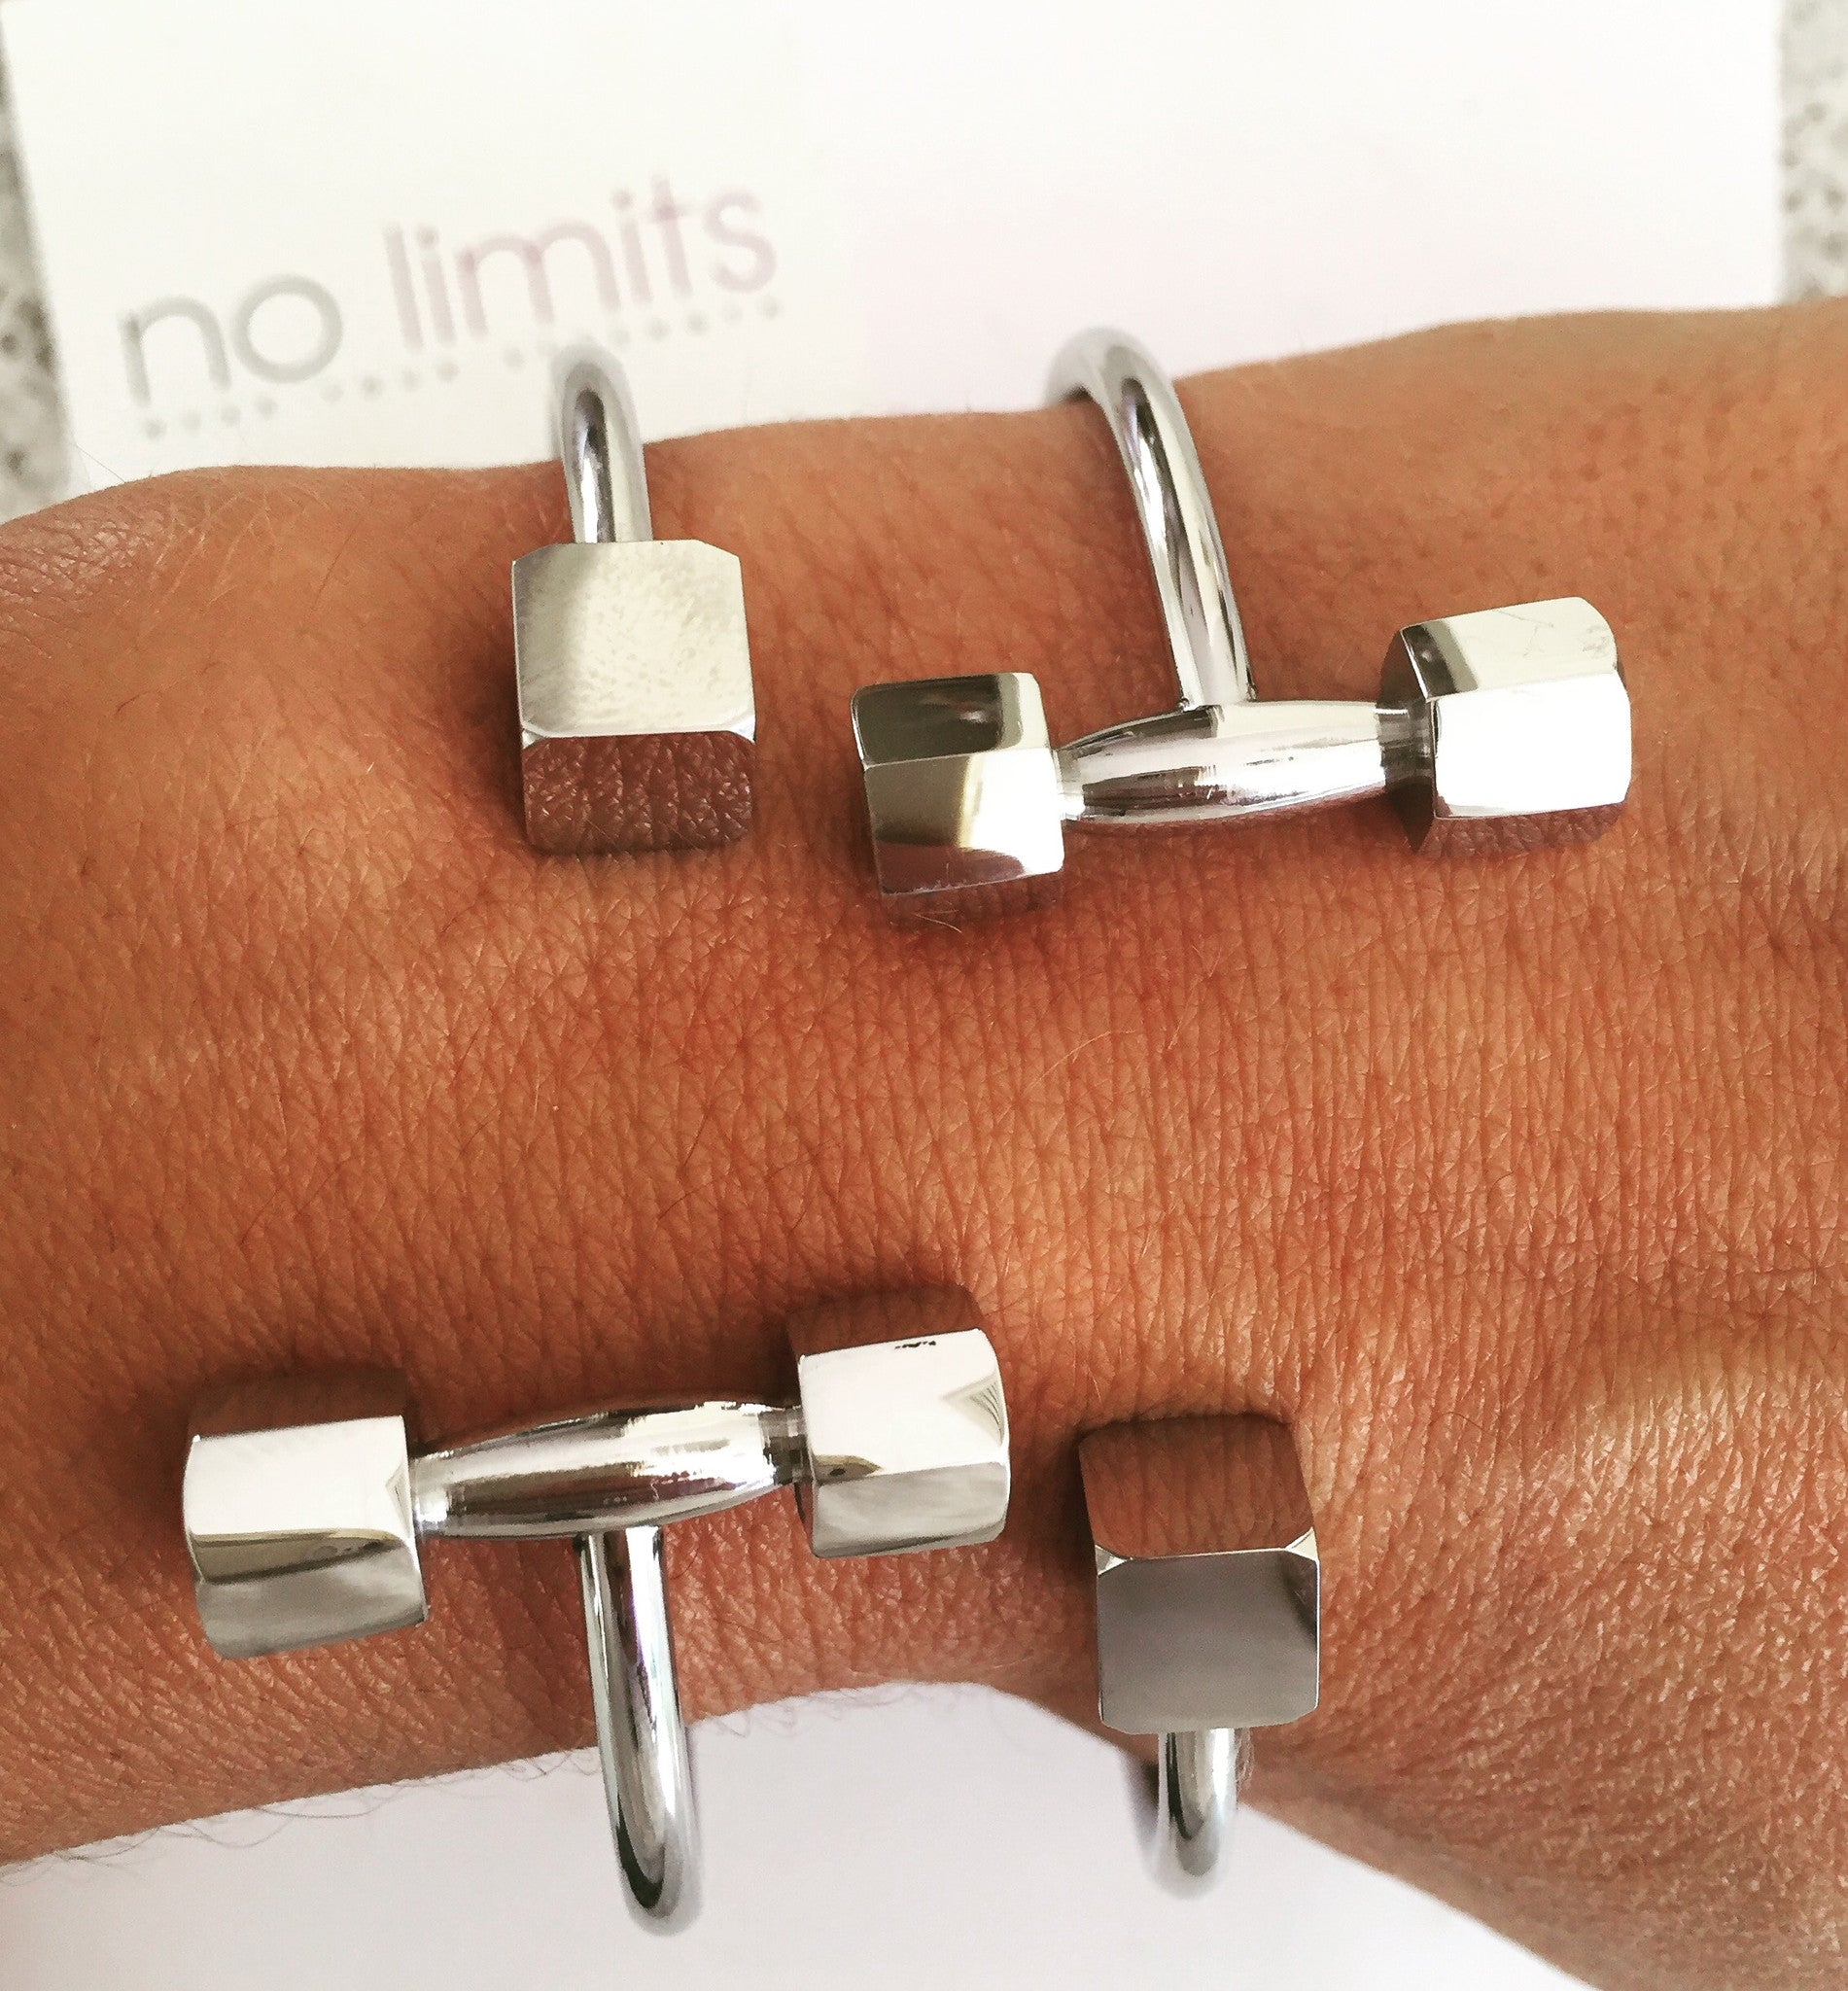 Gain it fitness bangle